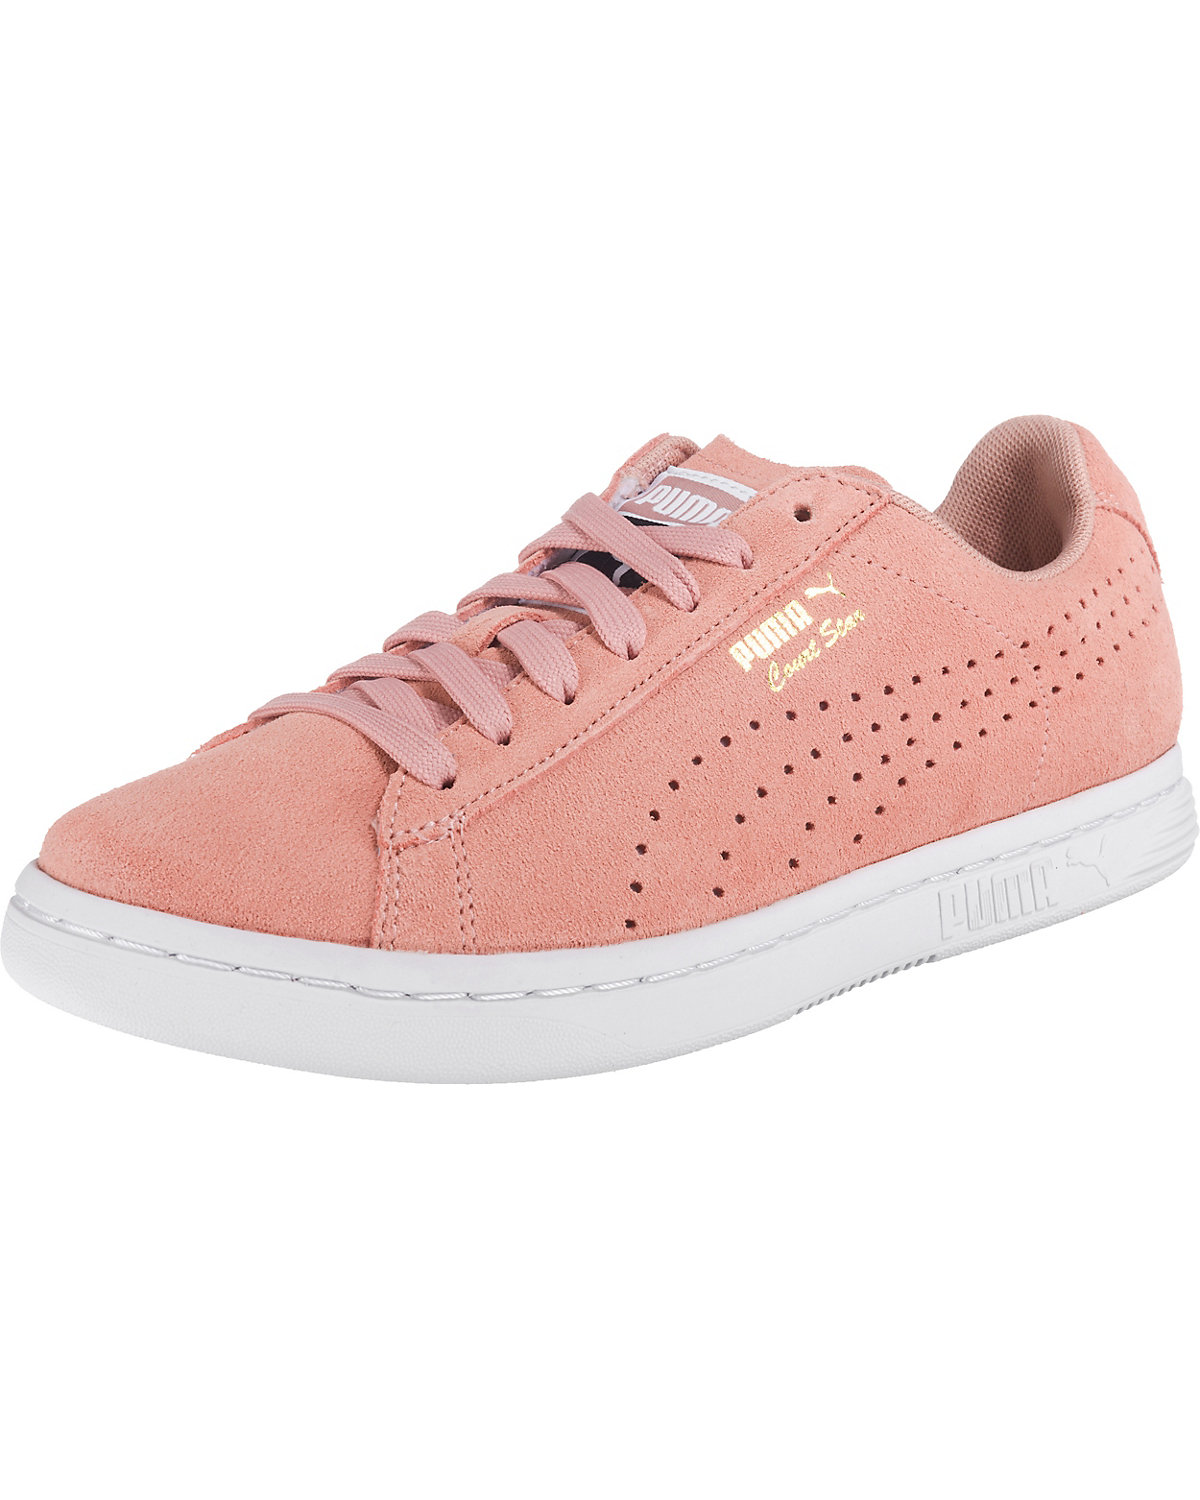 PUMA, Court Star Suede Sneakers Low, rosa